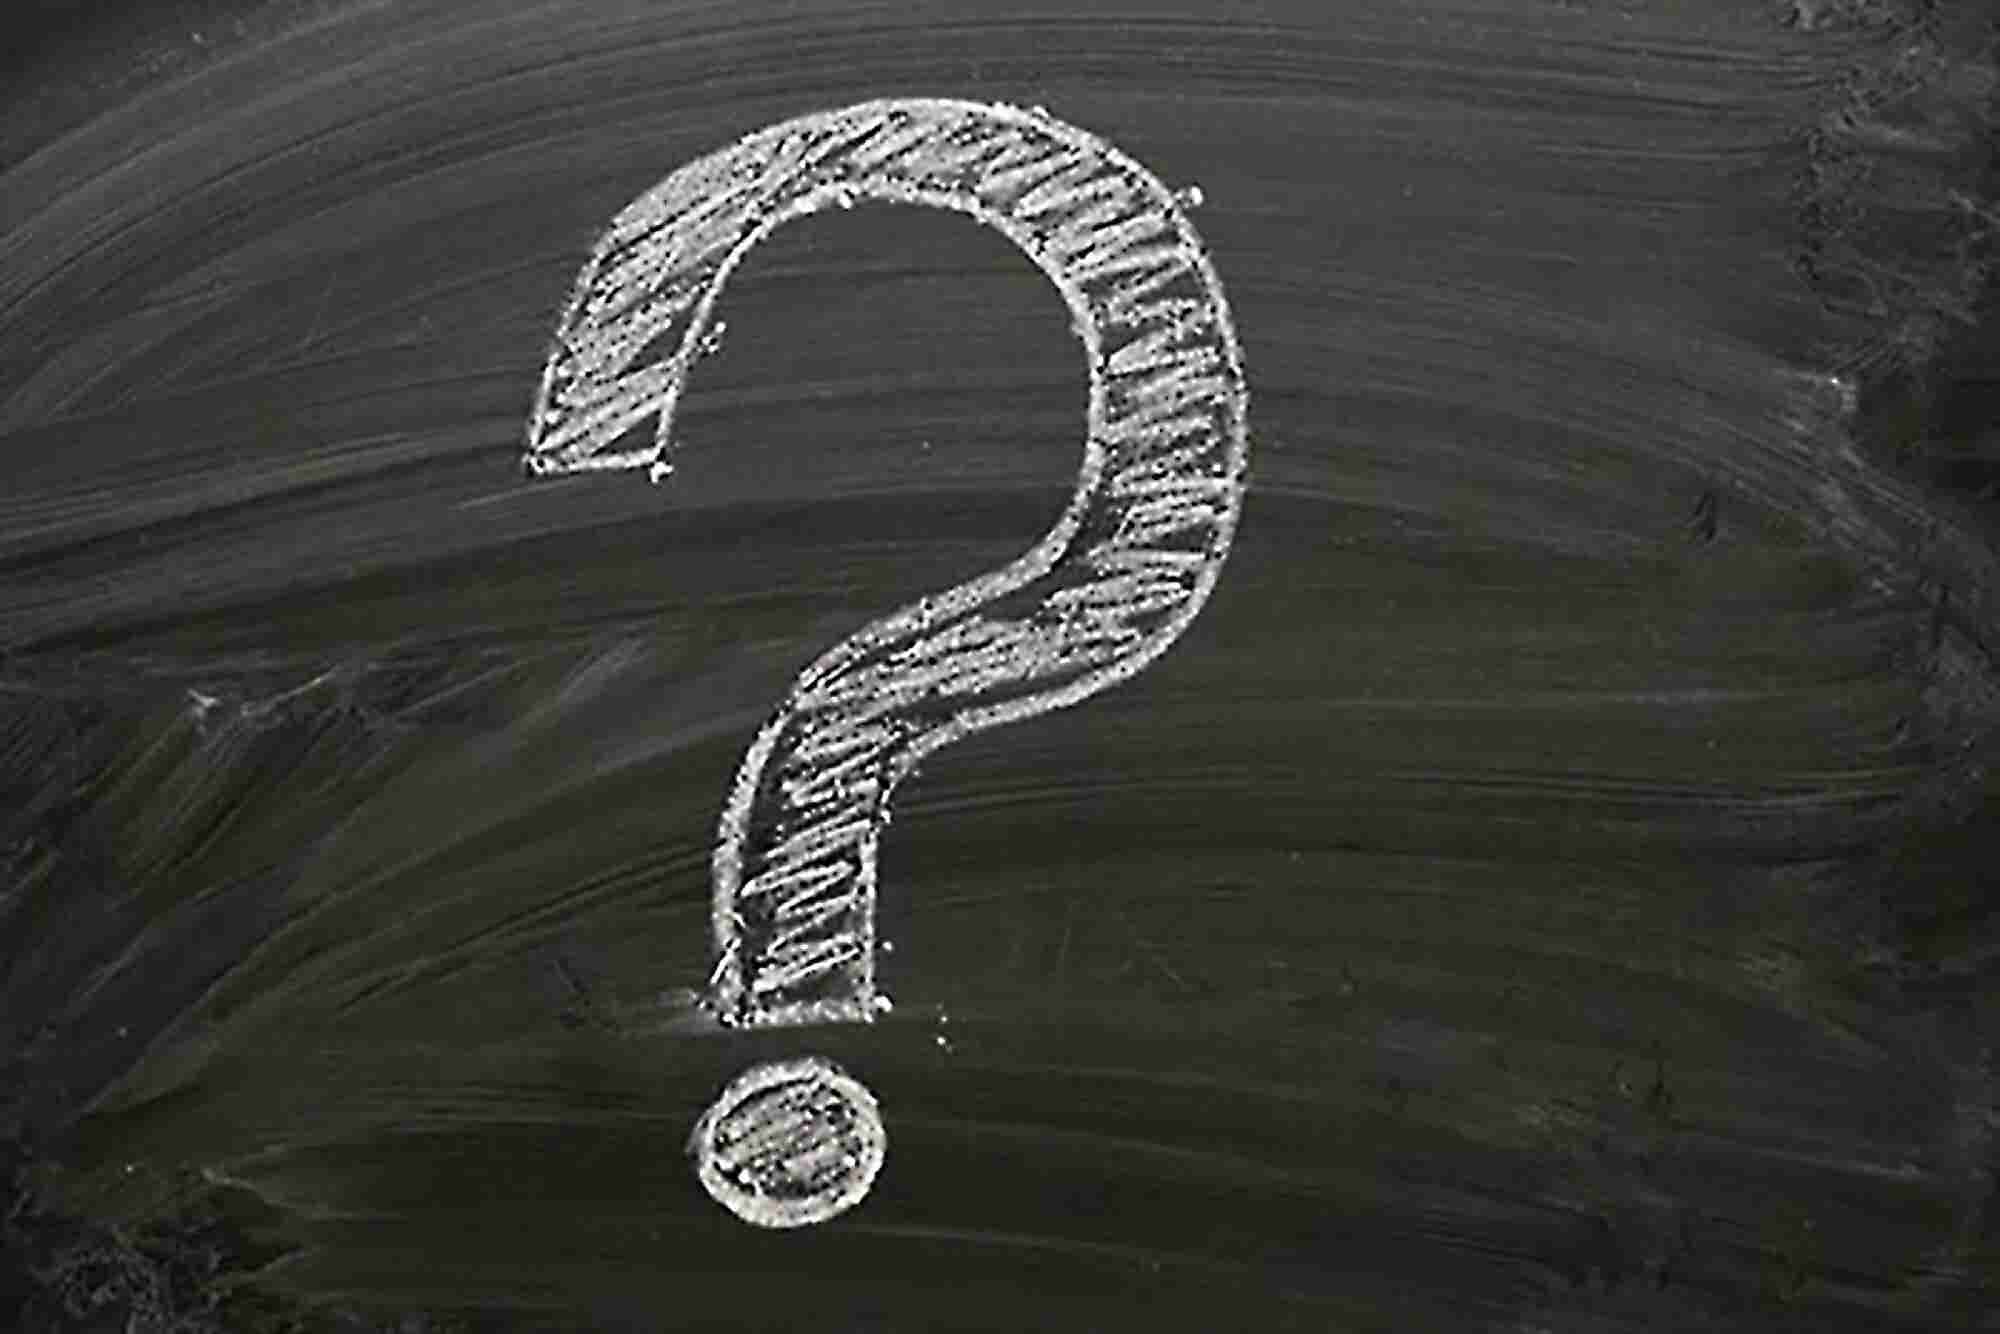 Have a Burning Business Question? Ask the Expert: Kip Tindell.